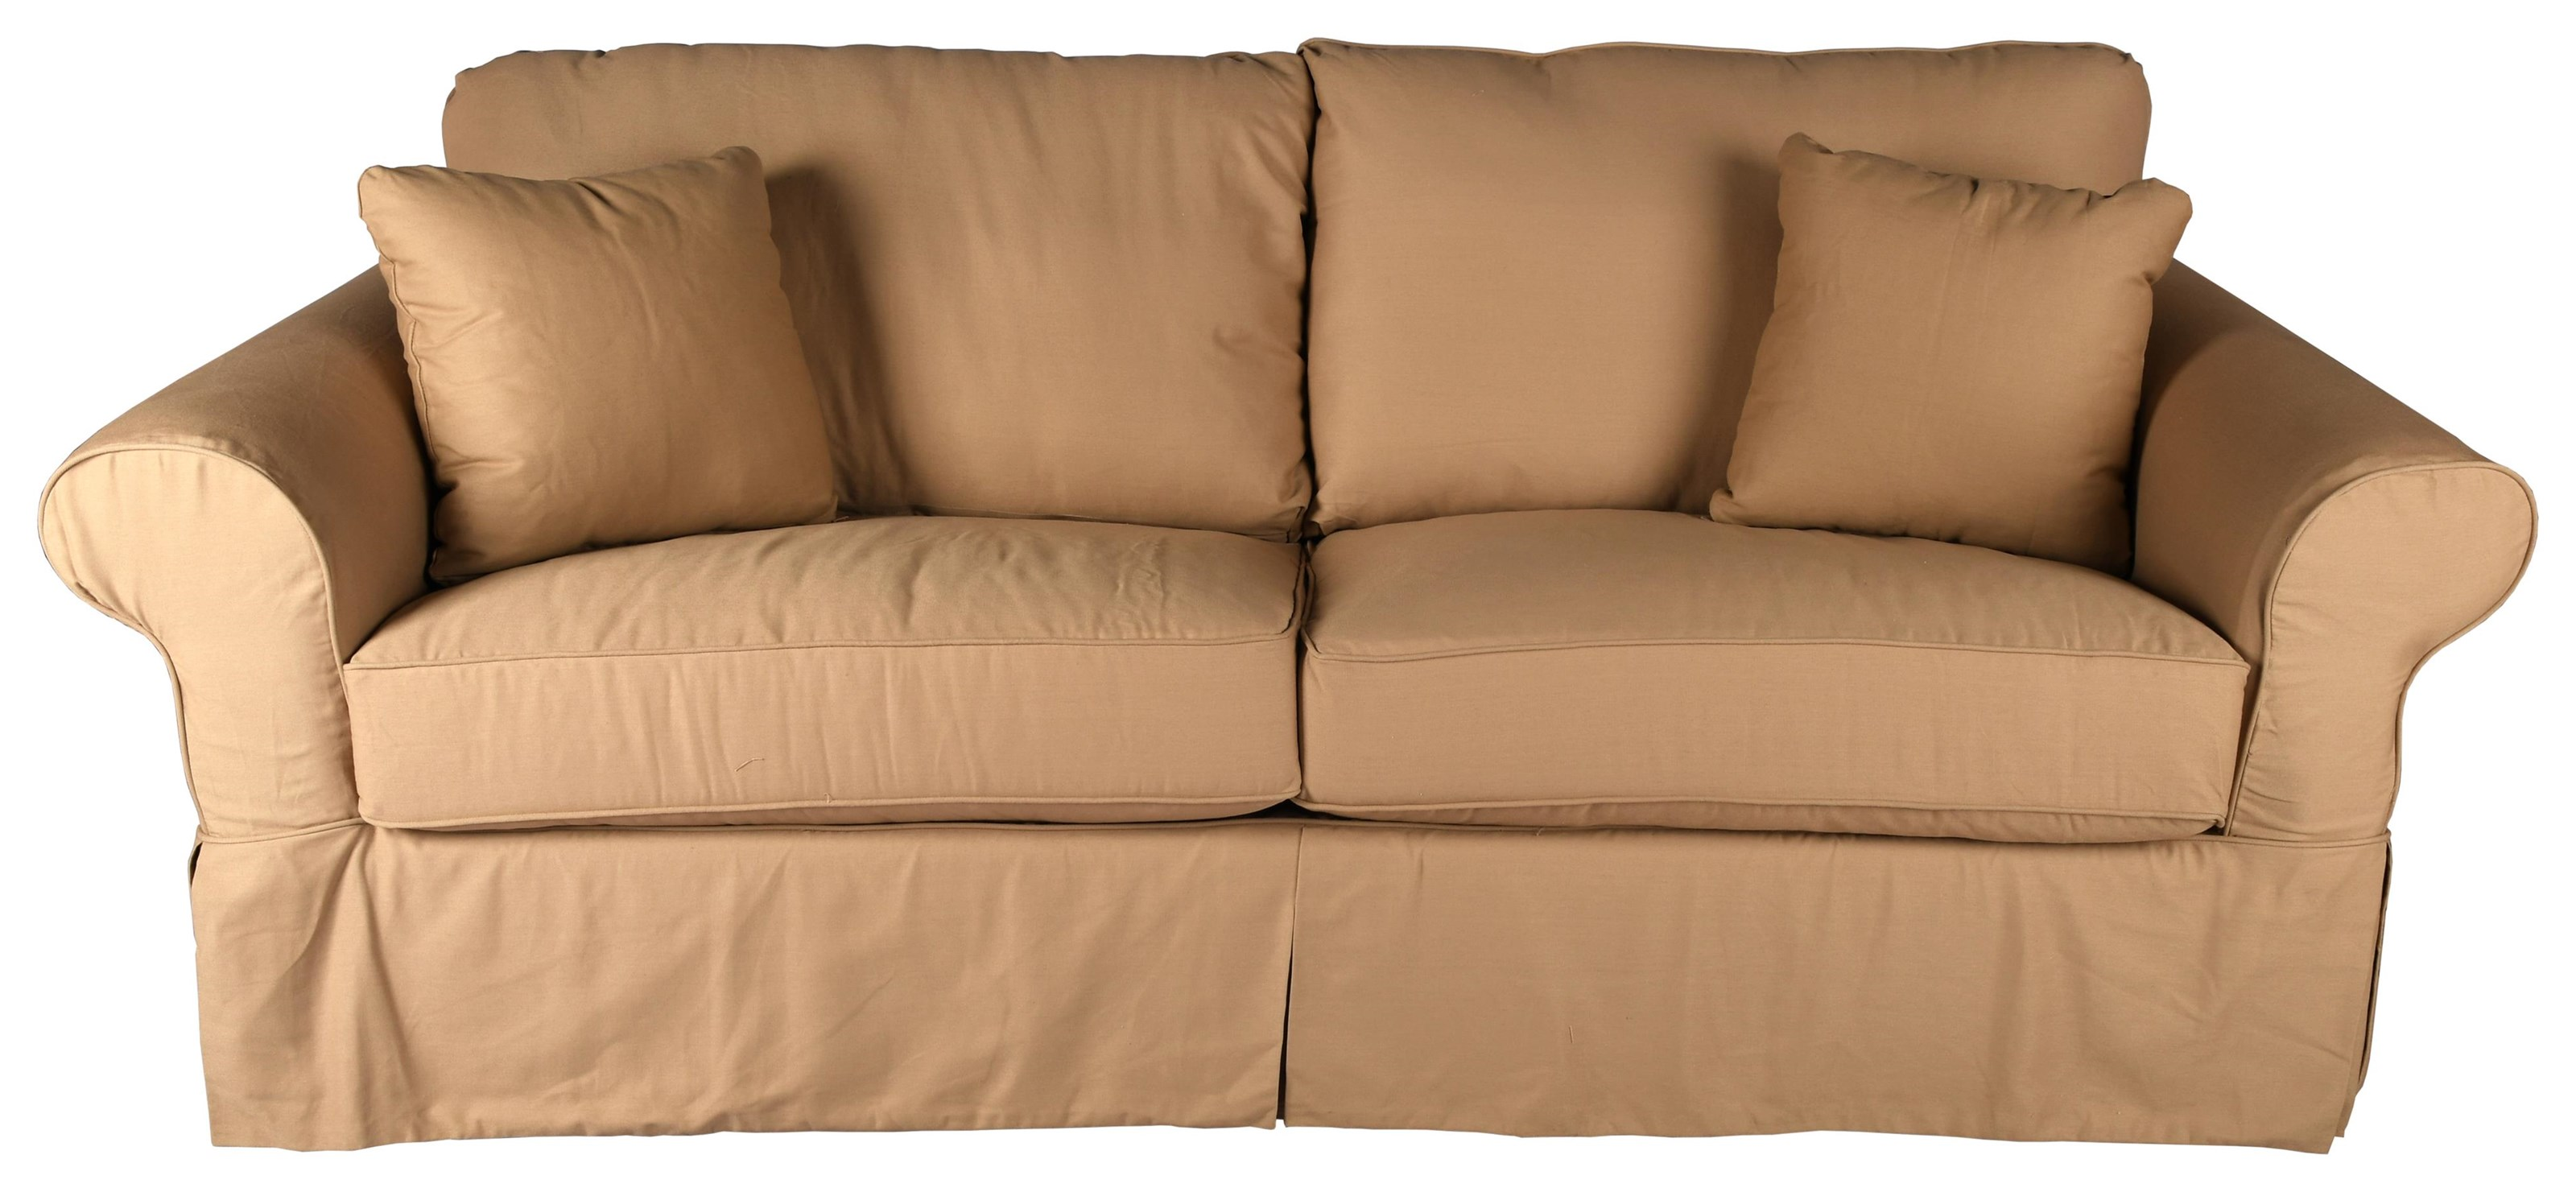 Stacy Sofa at Bennett's Furniture and Mattresses